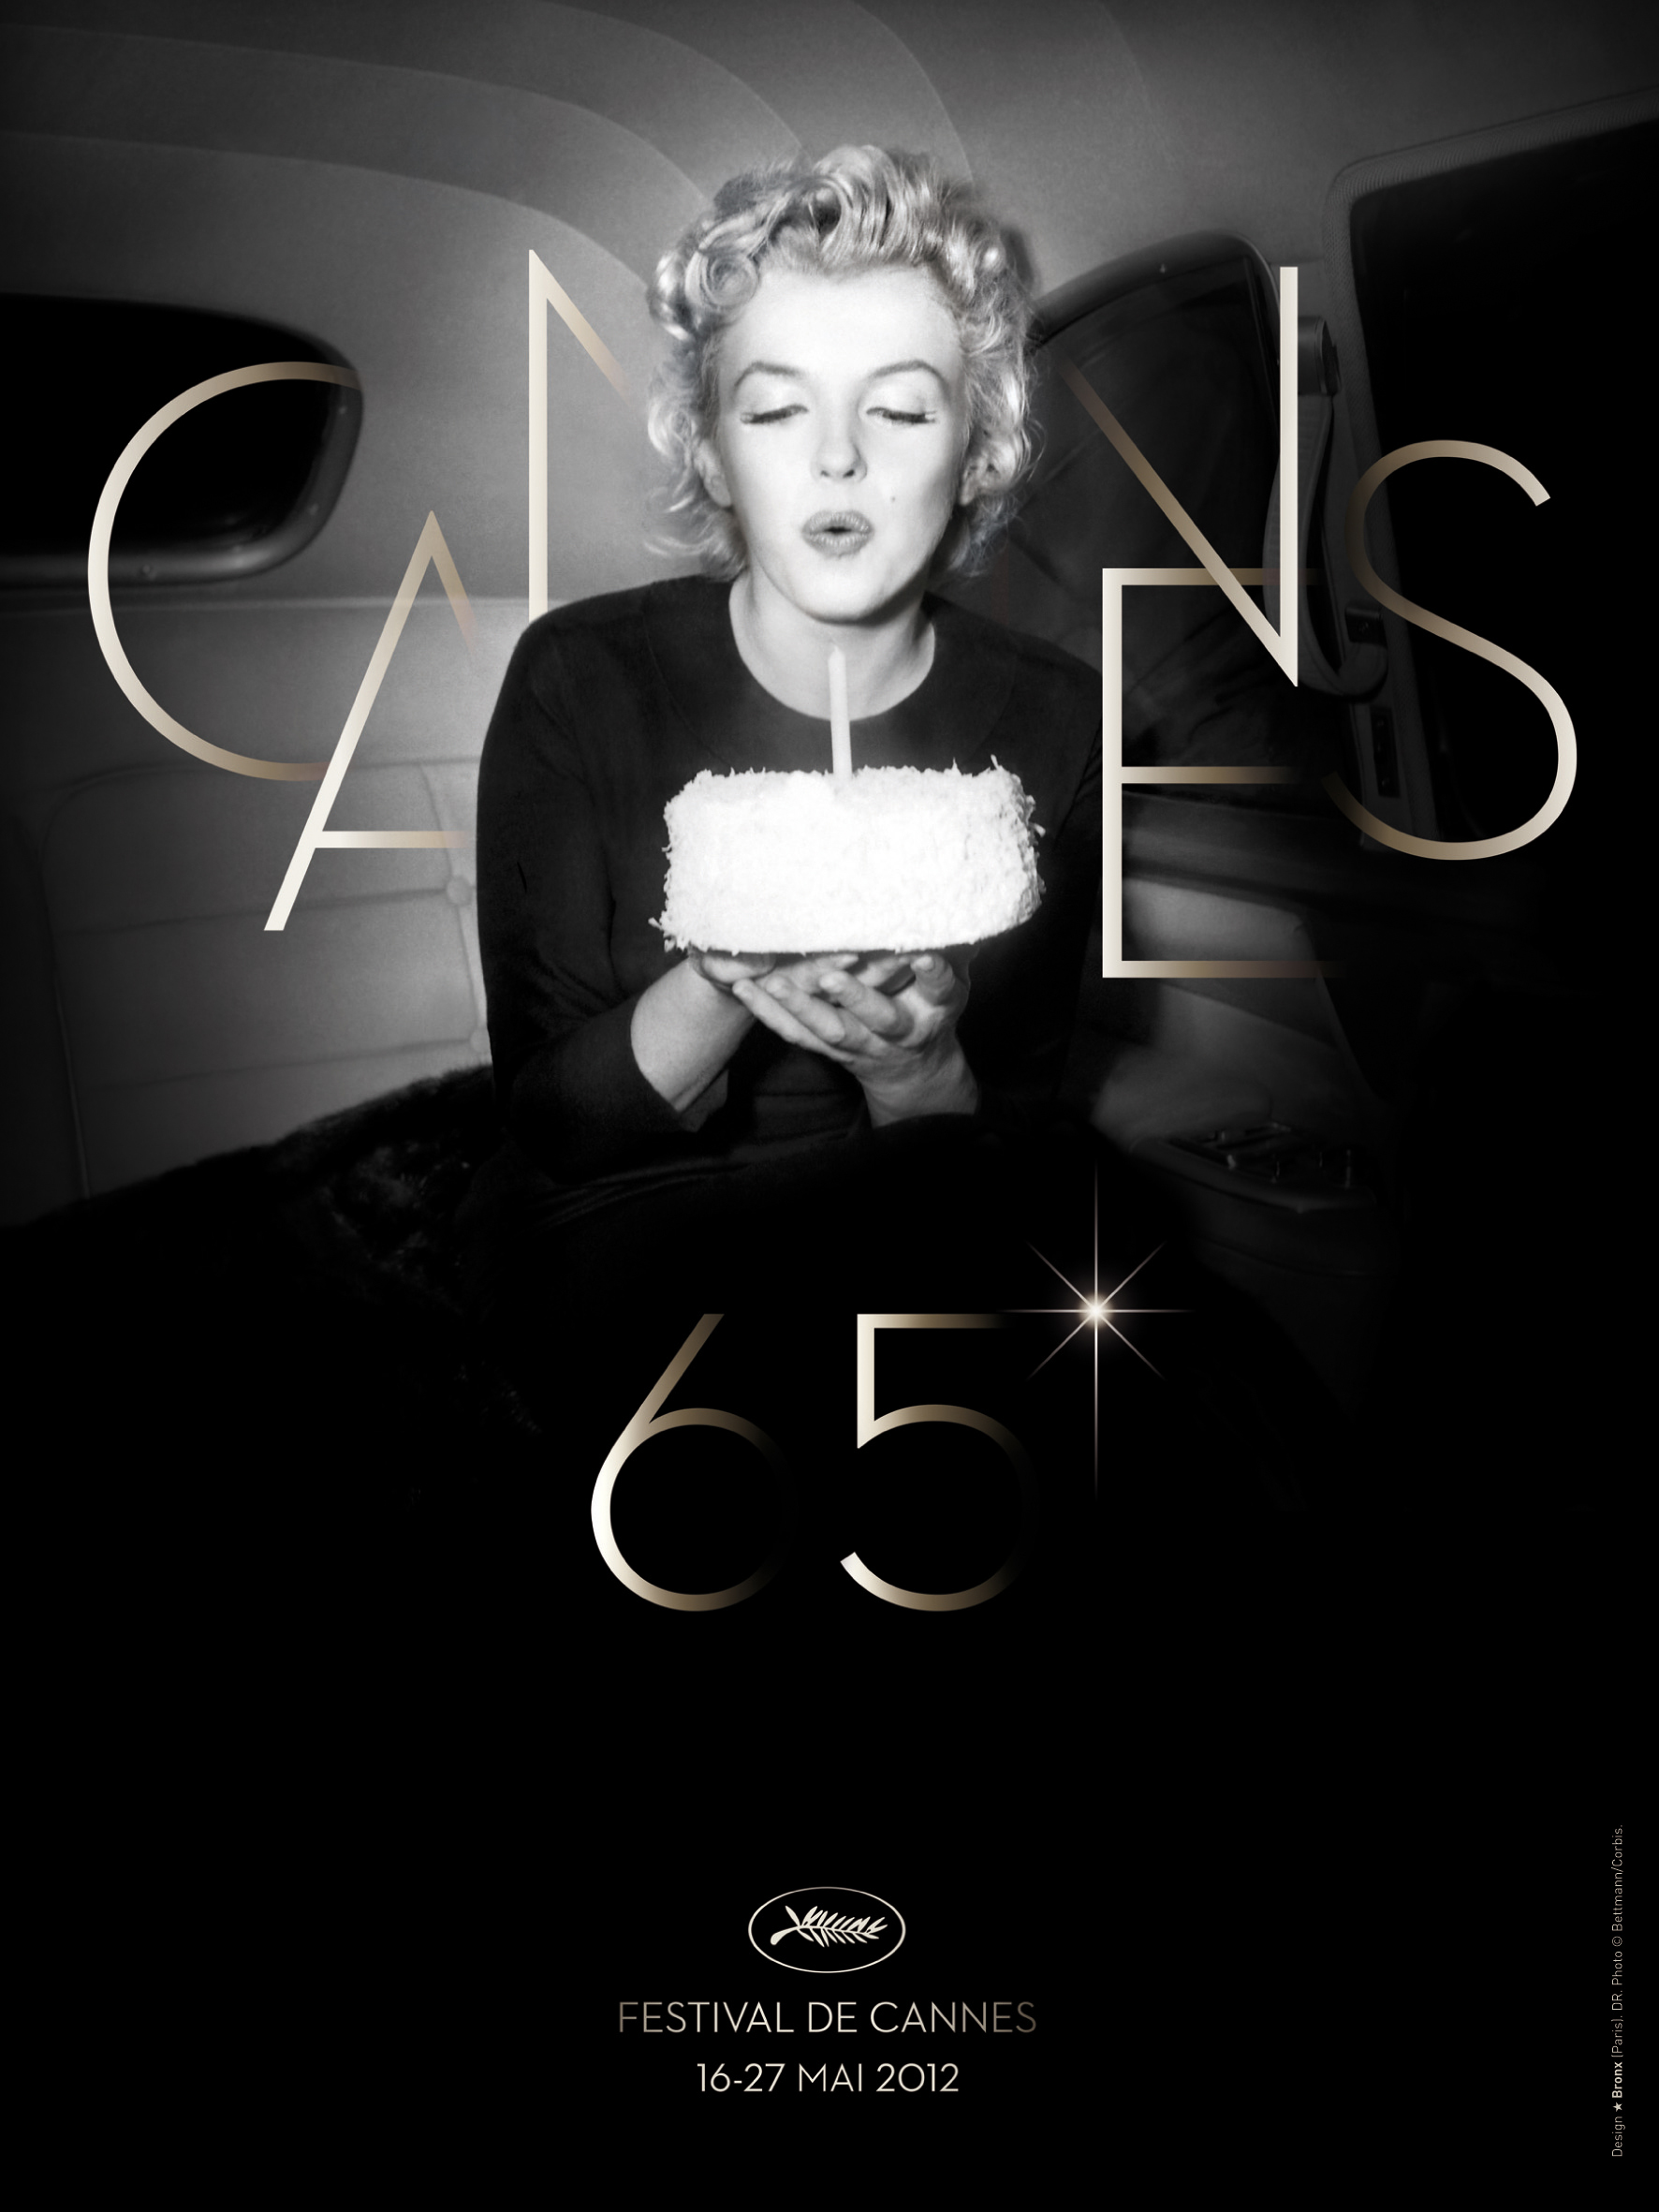 Marilyn Monroe Poster Marilyn Monroe Graces Official Poster For 65th Cannes Film Festival